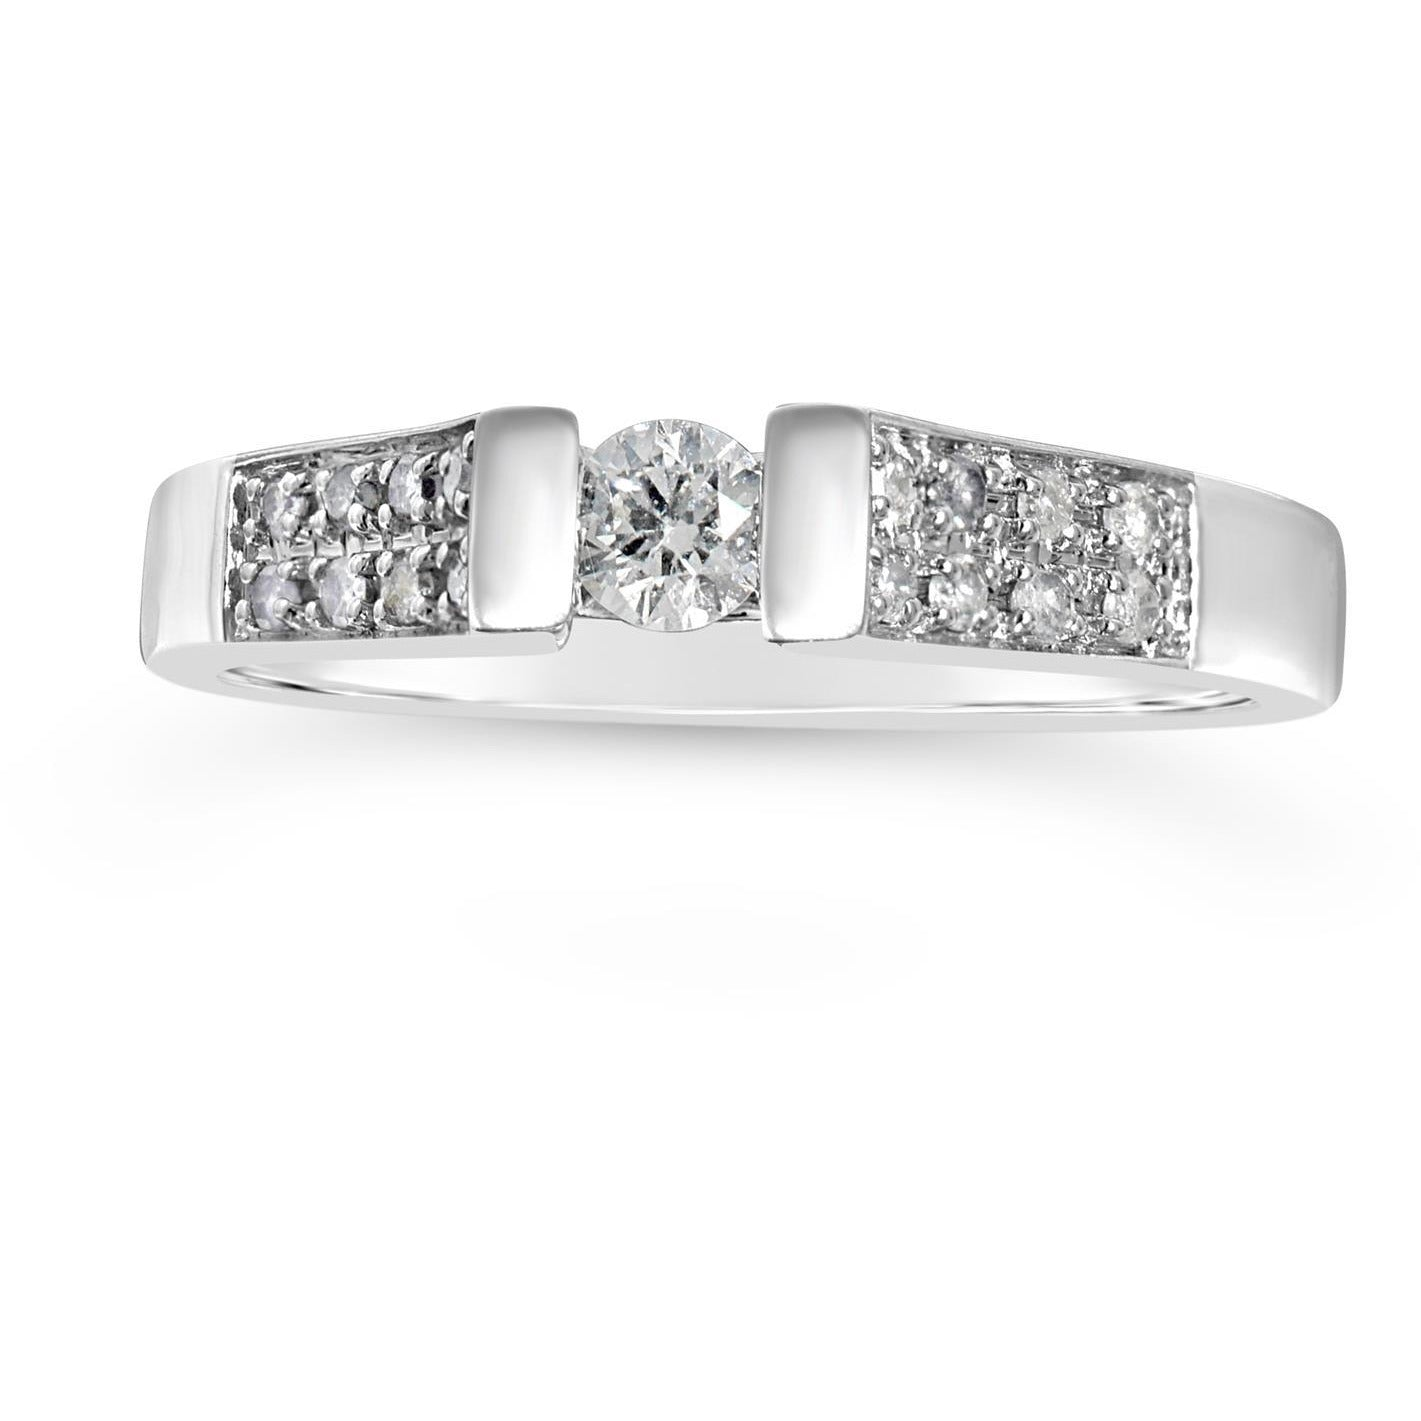 wide band solitaire ring with stone set shoulders - white gold ring